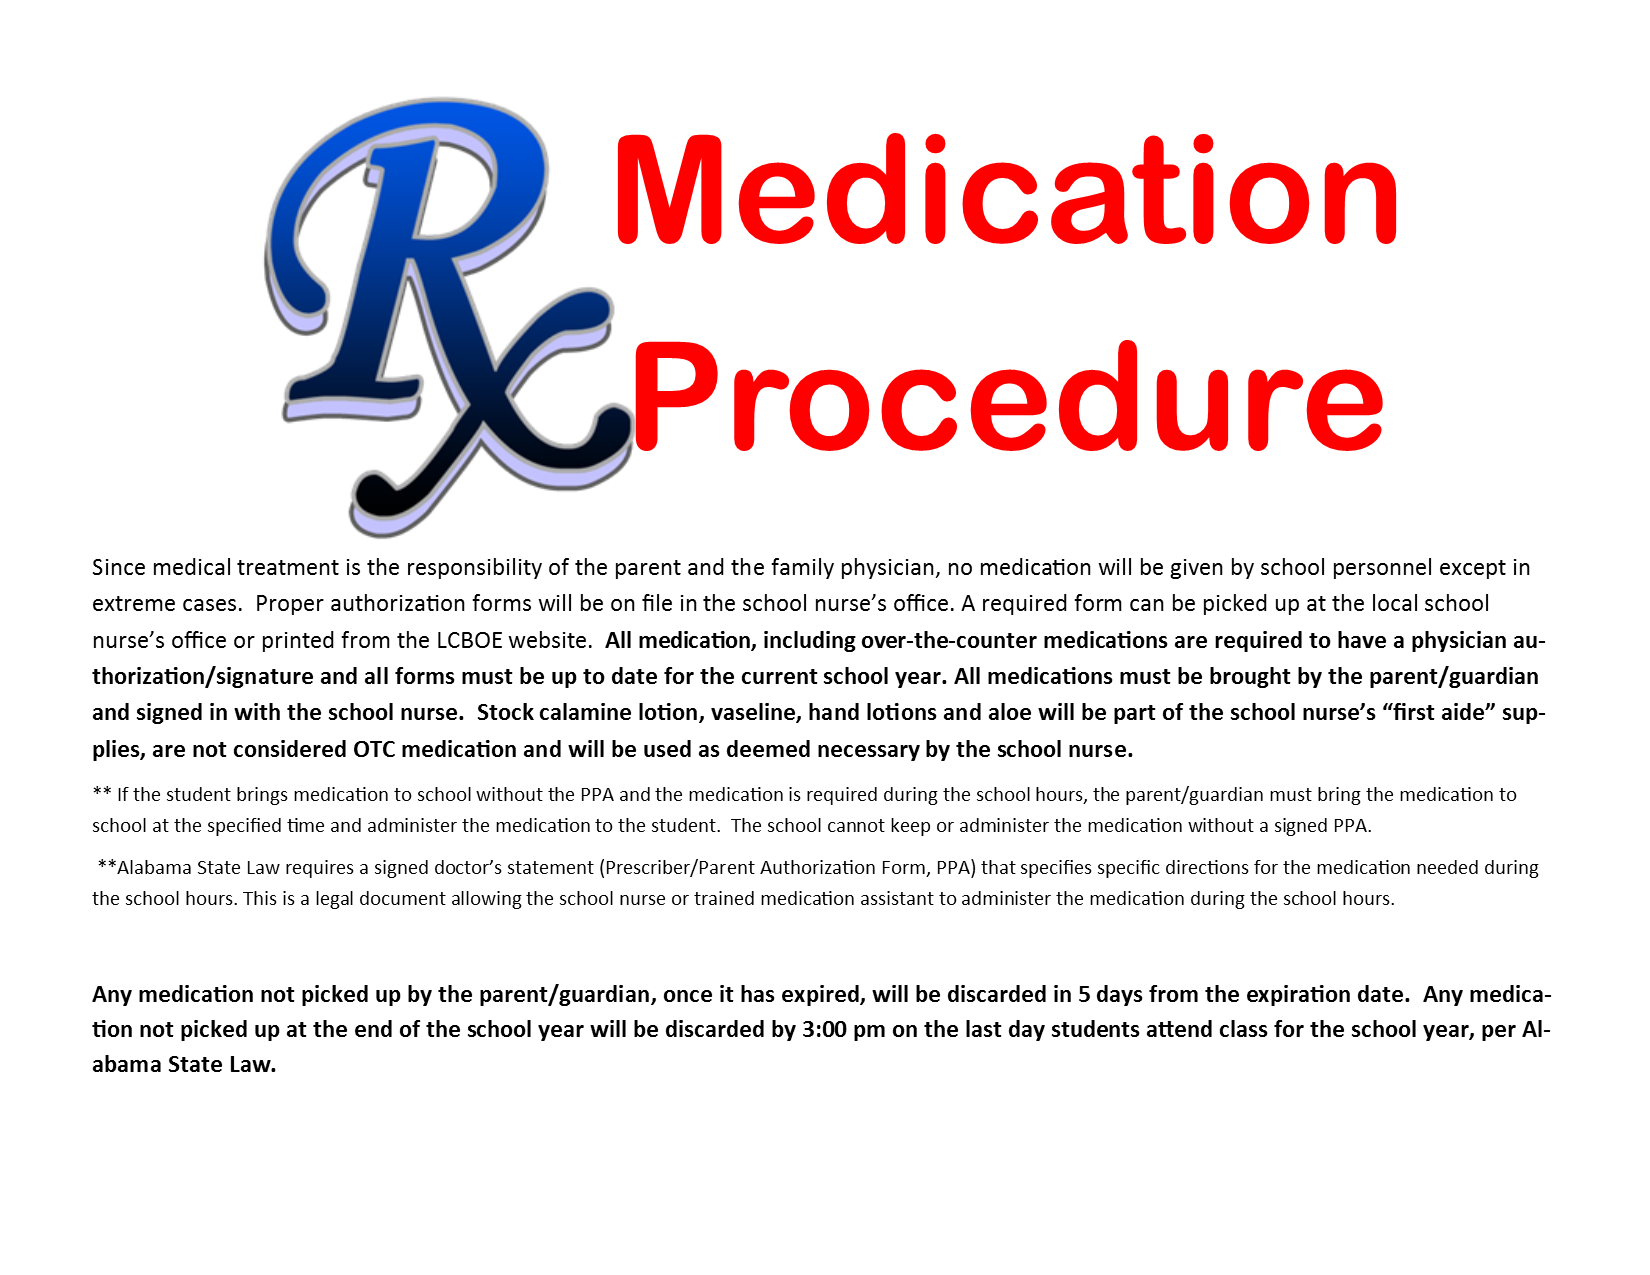 Medication Procedure